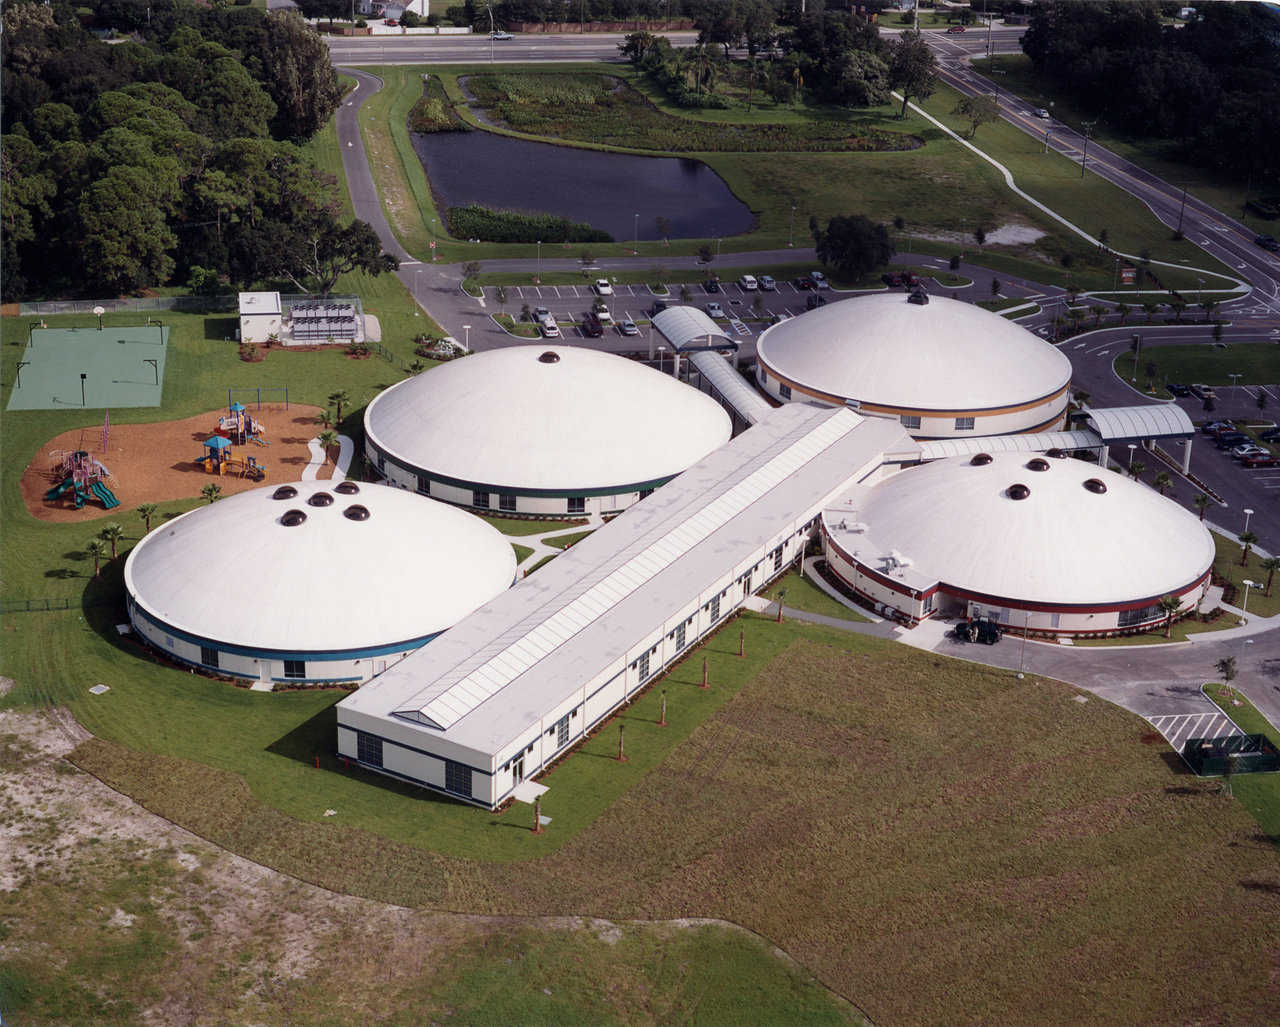 A first! — Bishop Nevins Academy is the first Monolithic Dome School in Florida.